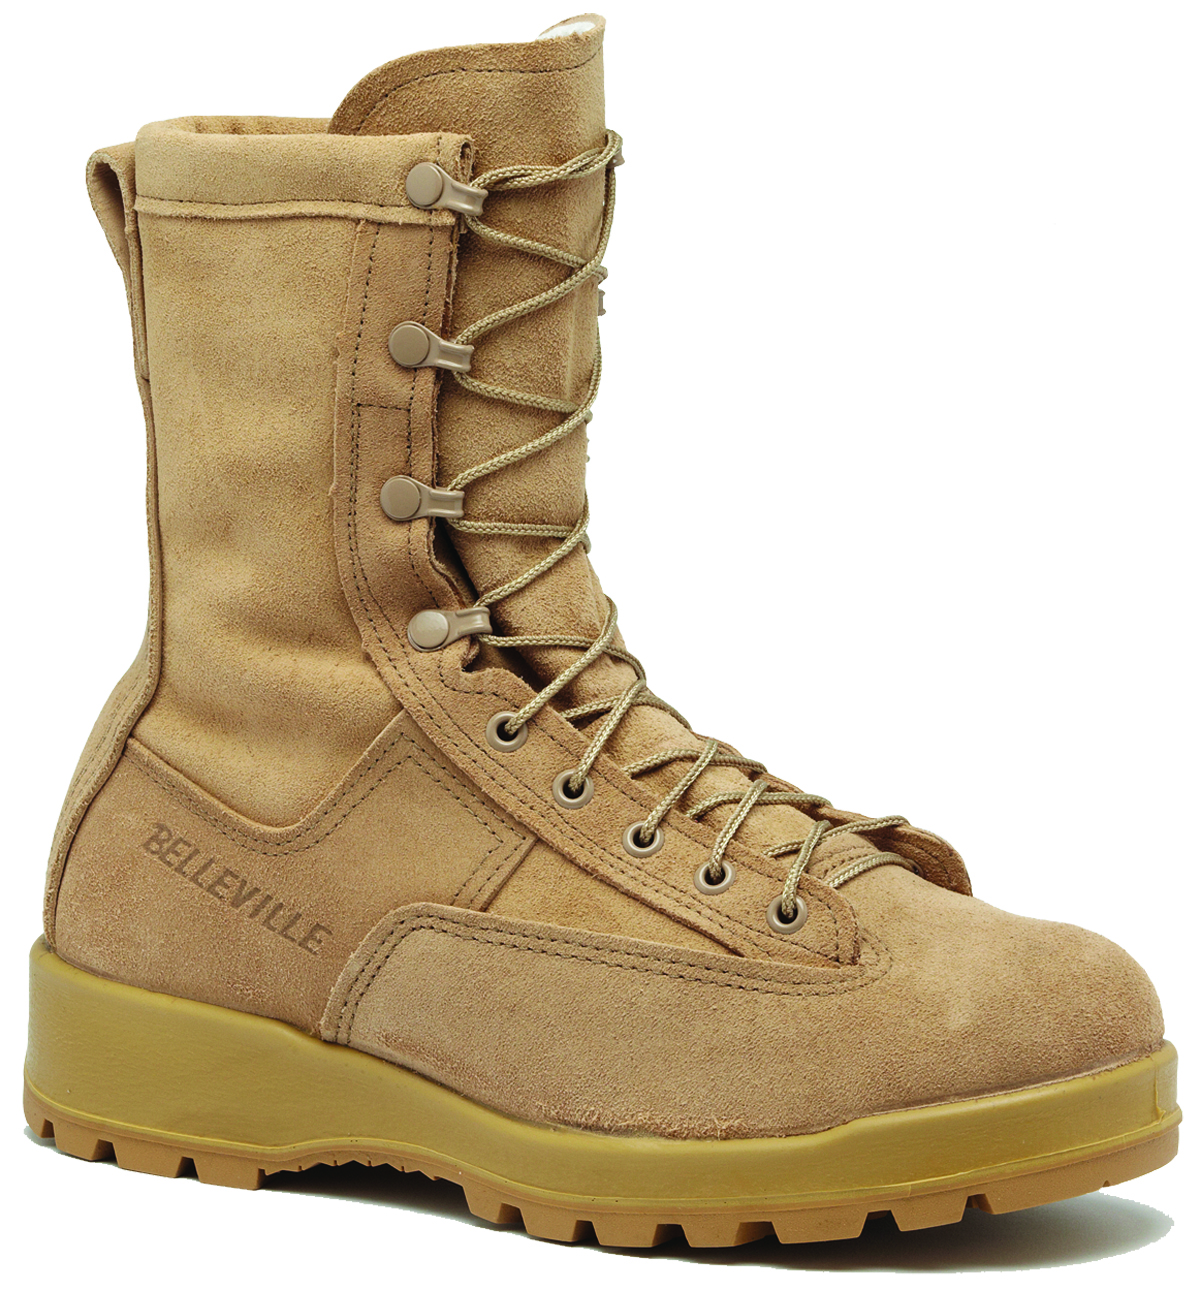 Belleville 775 ST Cold Weather Tan Insulated (600g) Waterproof Steel Toe  Boot c9a60414a4